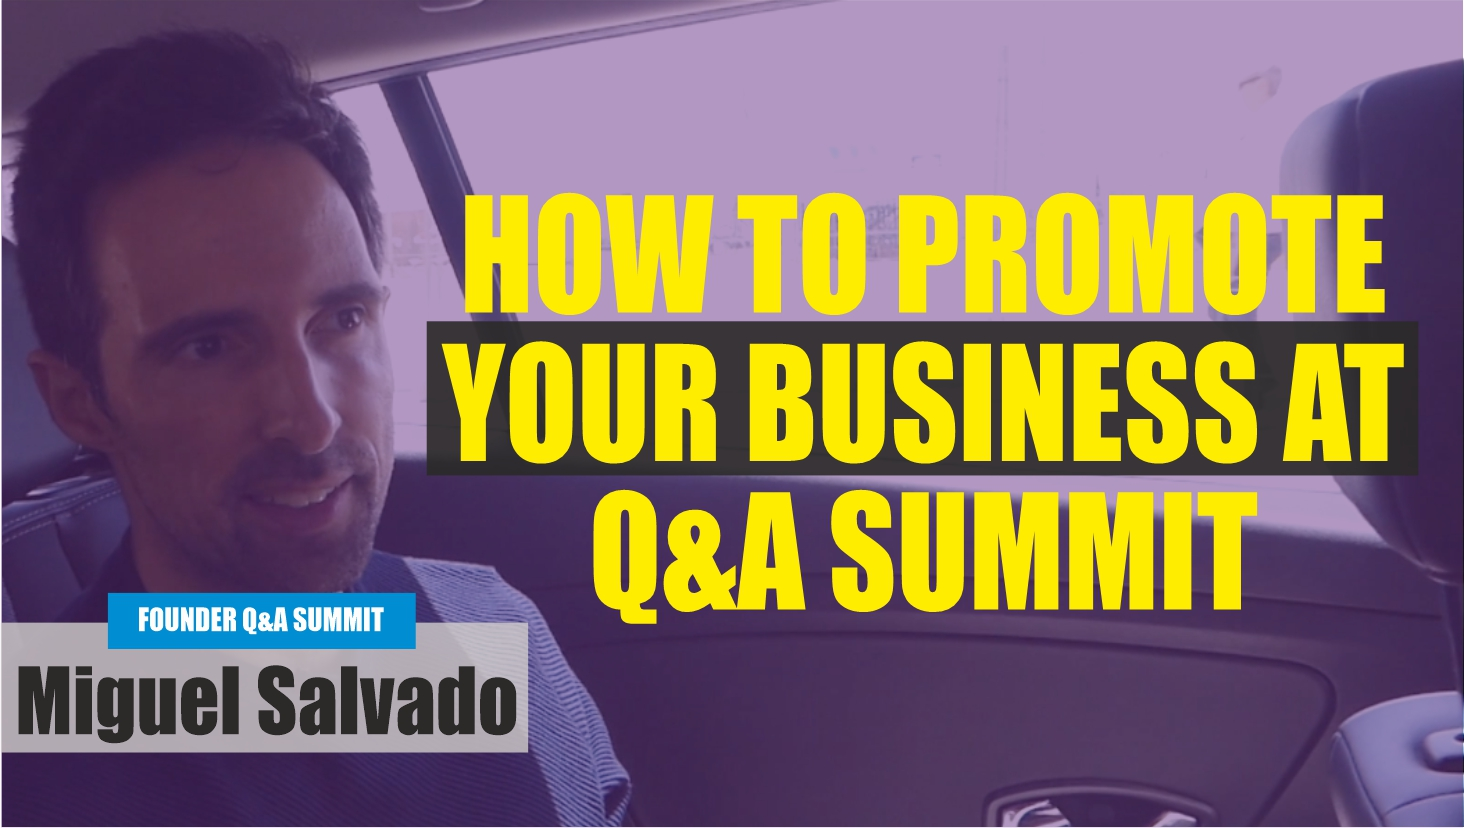 How to promot your business